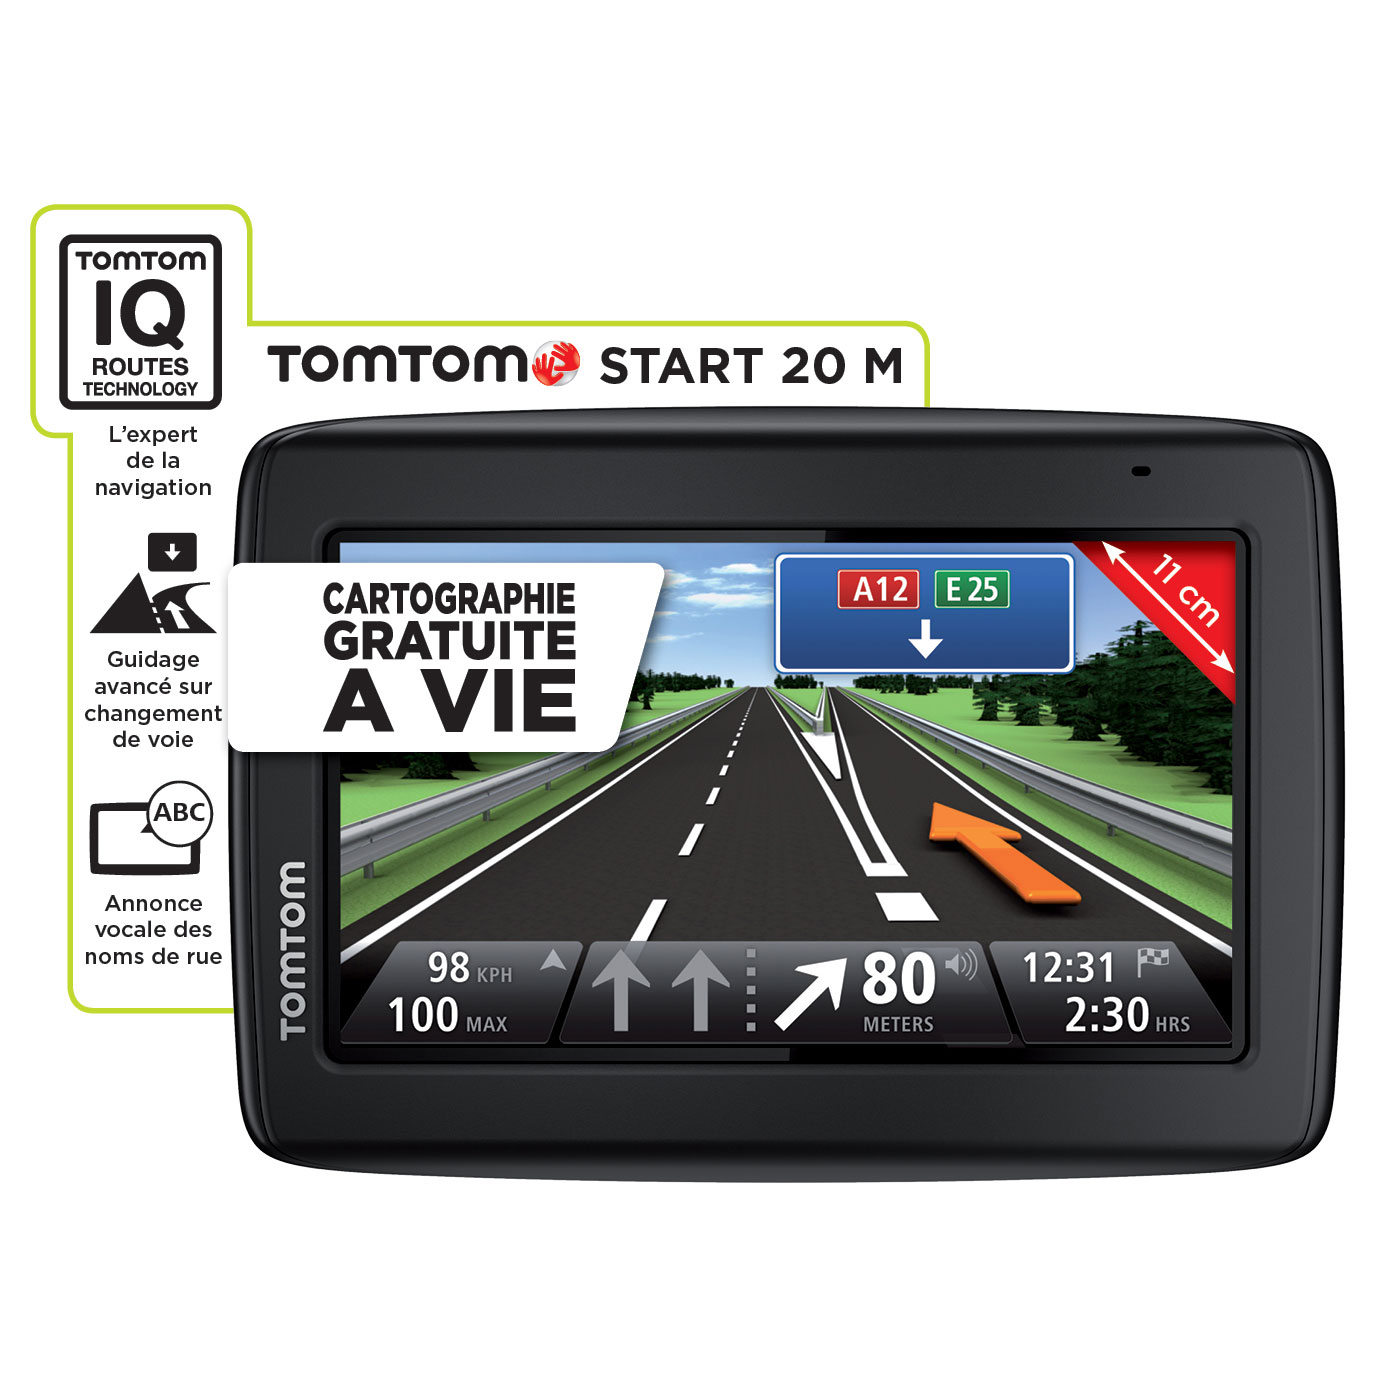 tomtom start 20 m gps tomtom sur. Black Bedroom Furniture Sets. Home Design Ideas